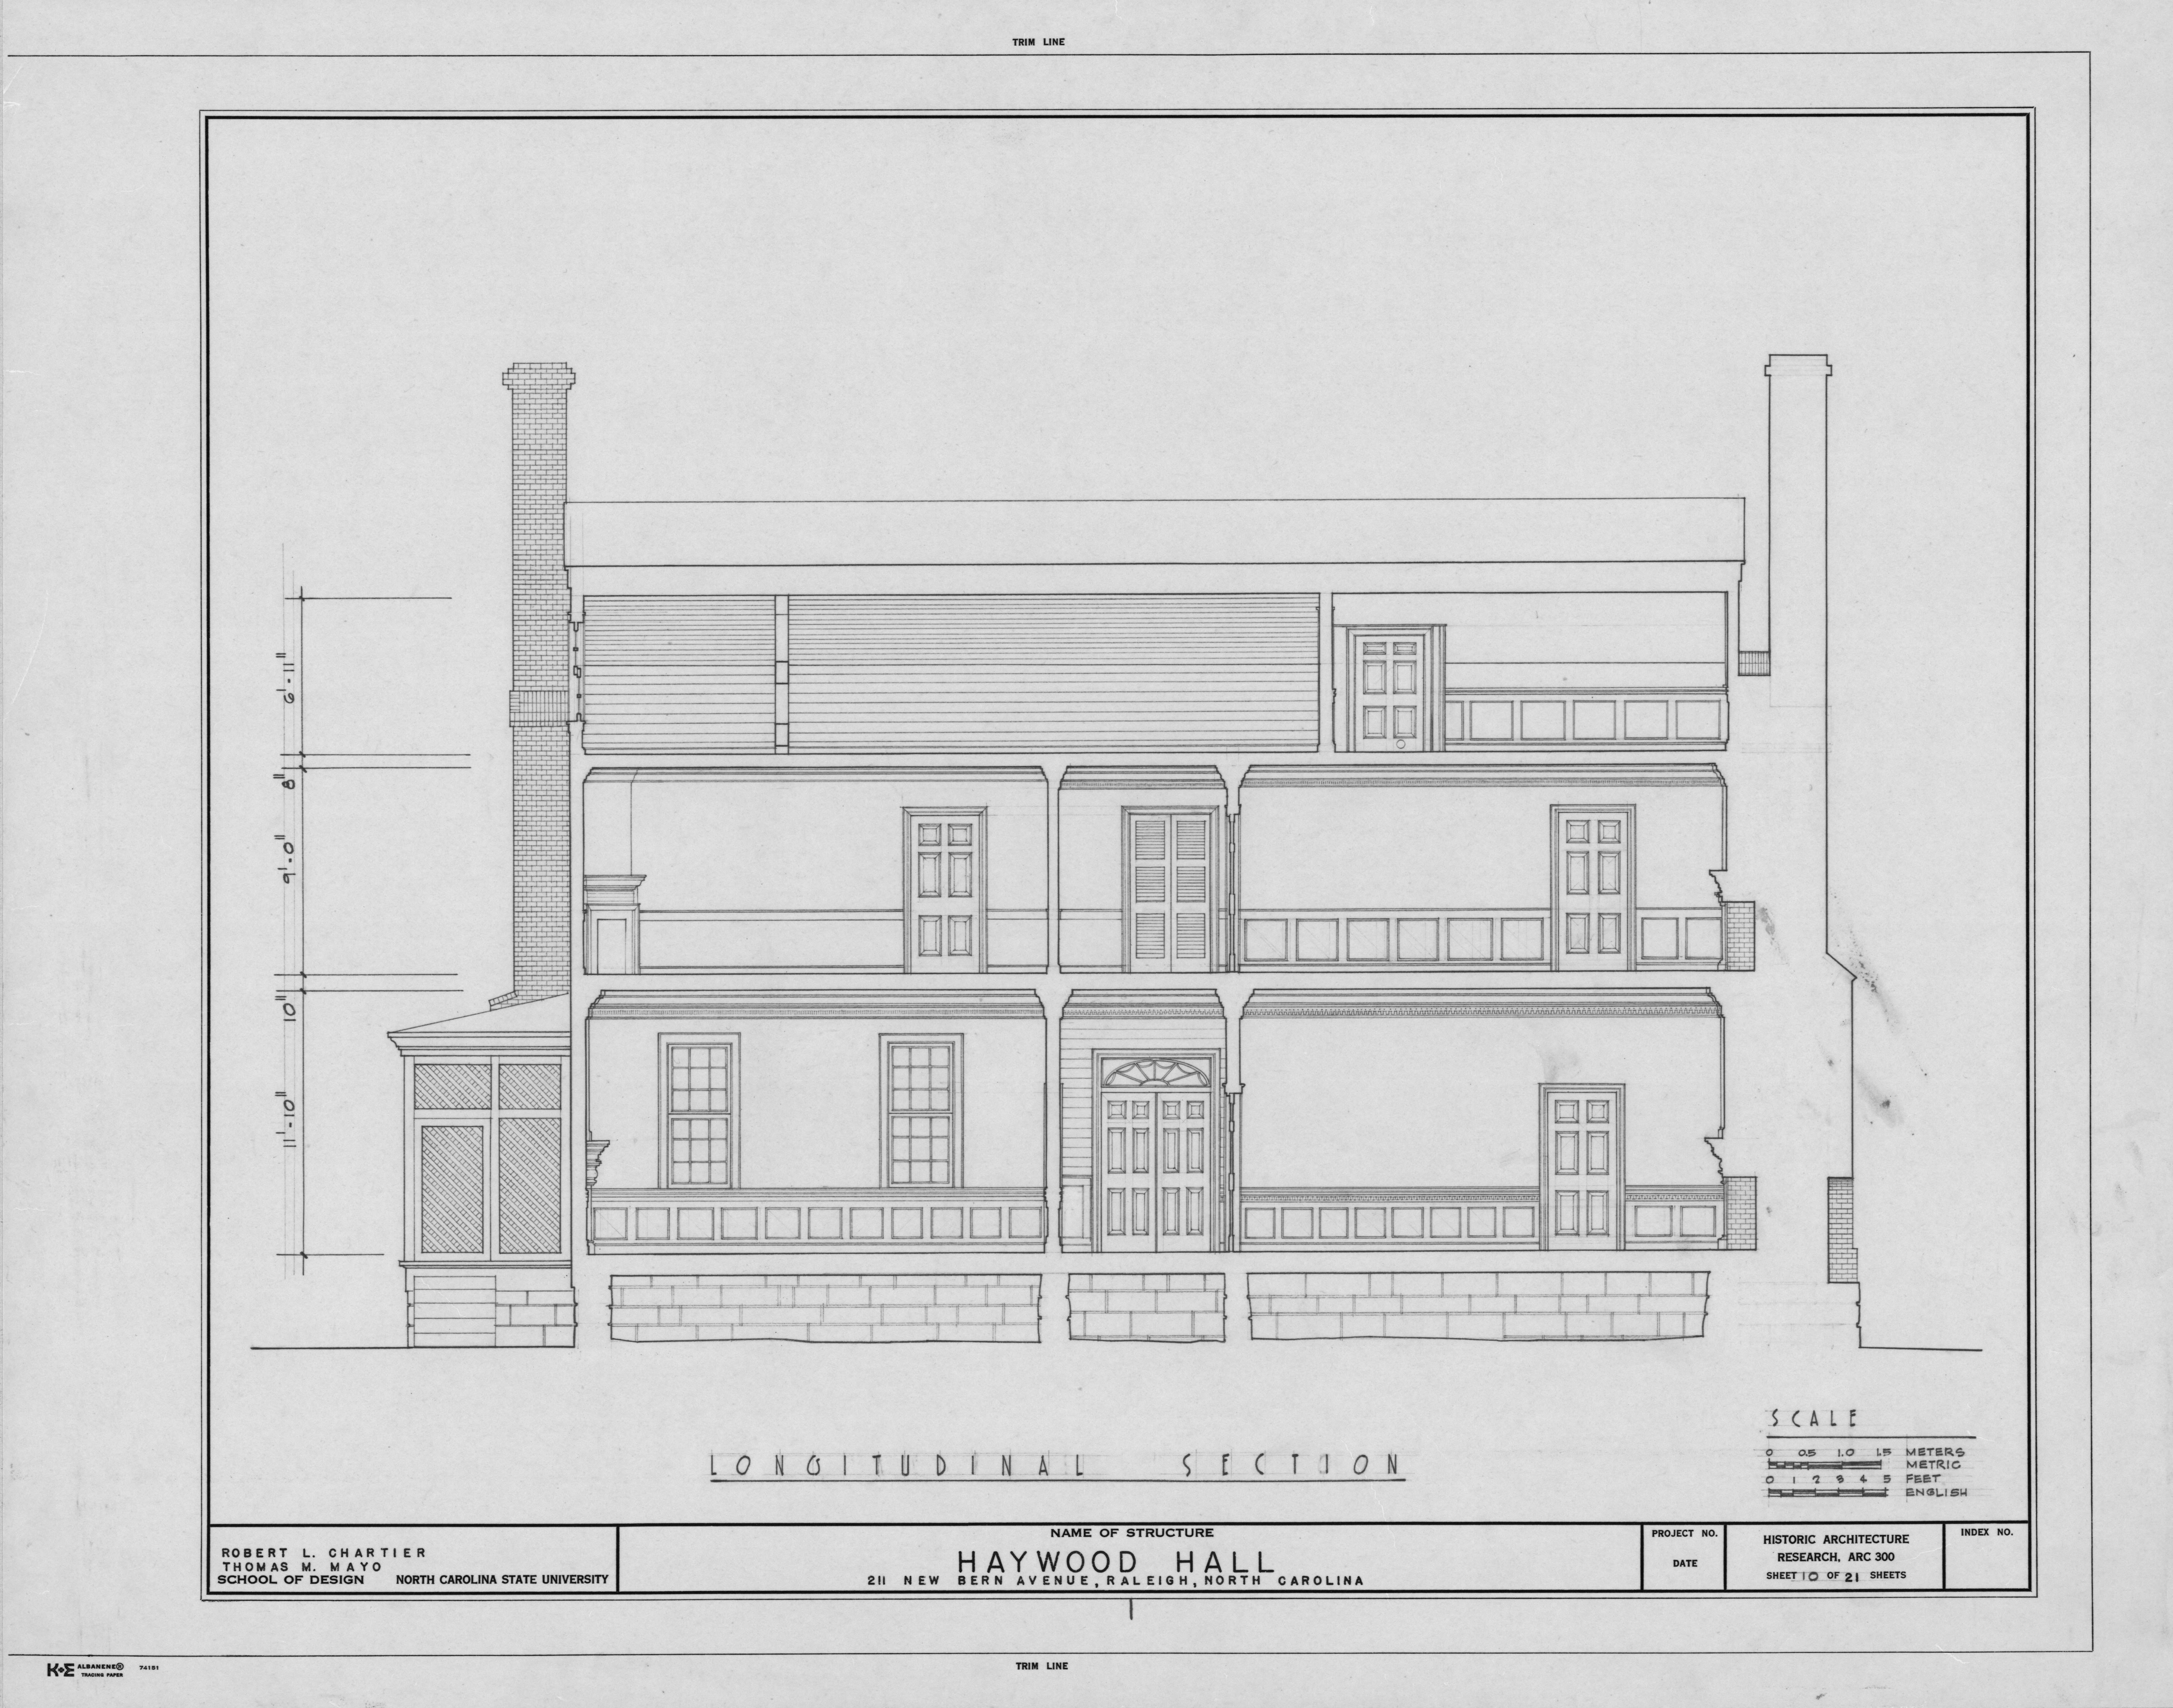 Longitudinal section, Haywood Hall, Raleigh, North Carolina